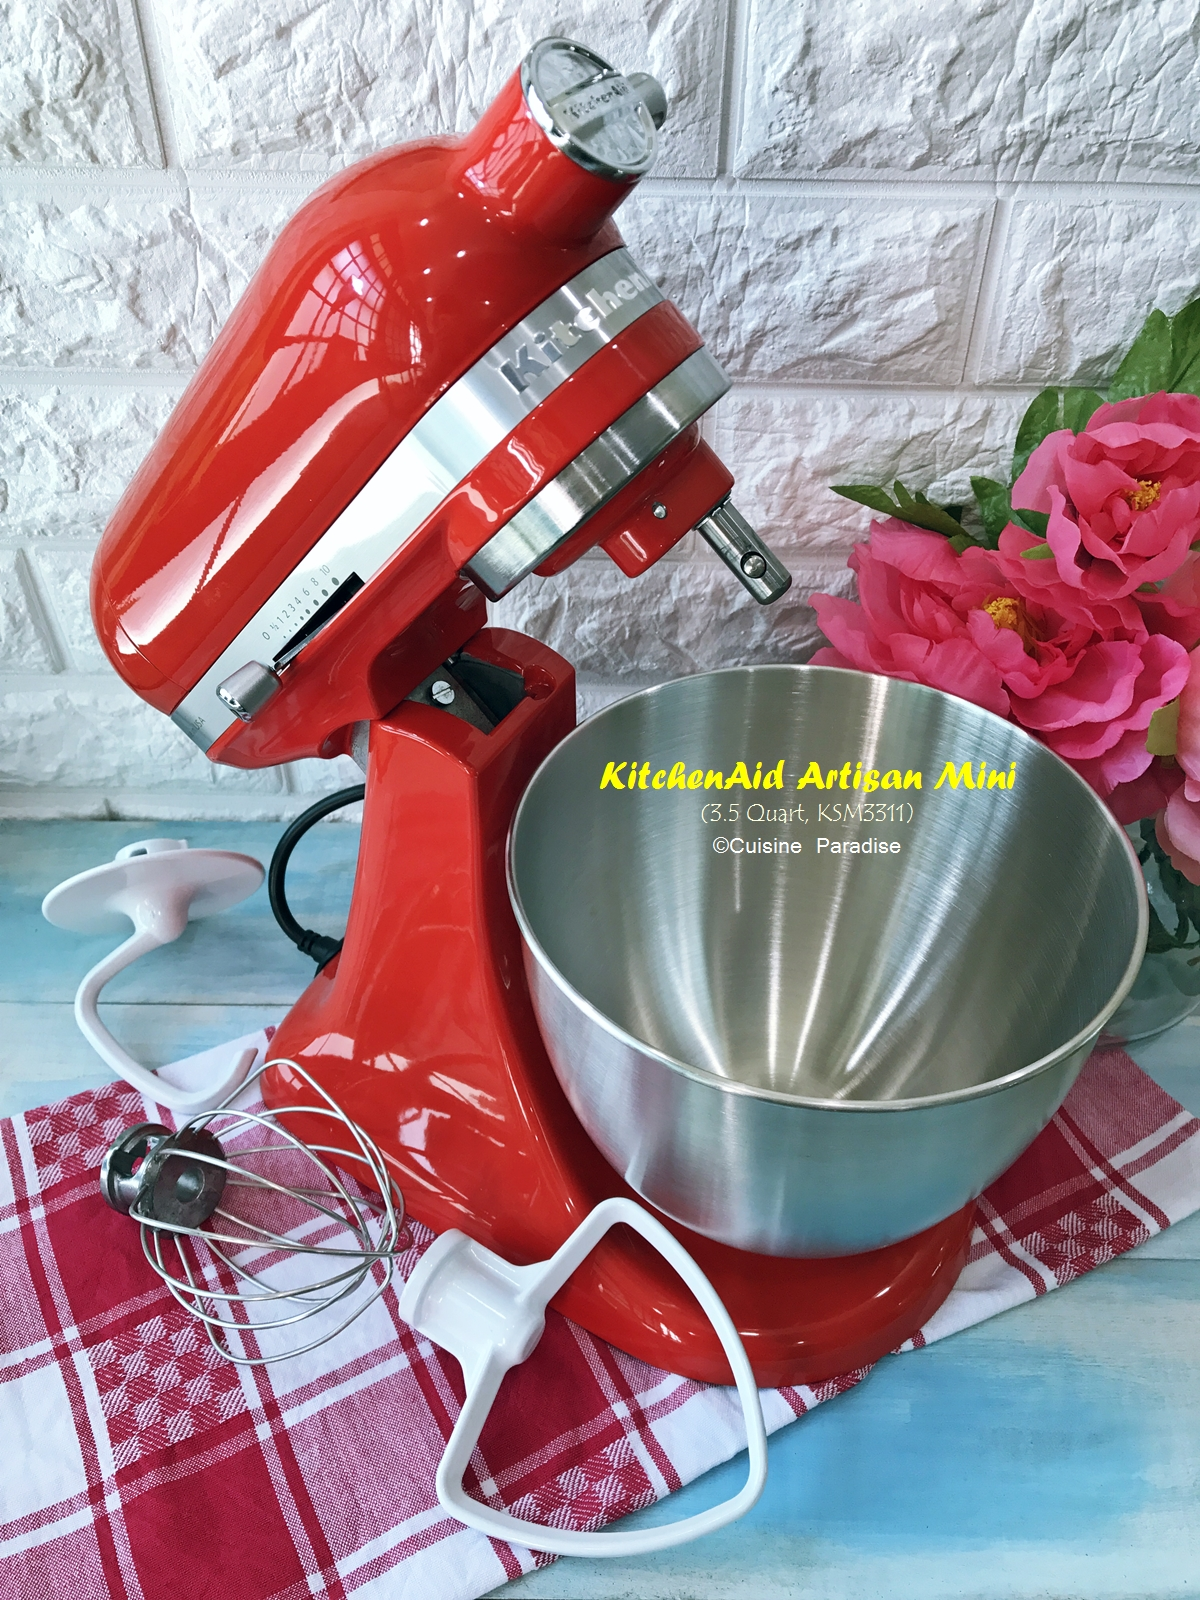 Magnificent Review Kitchenaid Artisan Mini Tilt Head Stand Mixer Ksm3311 Home Interior And Landscaping Ologienasavecom